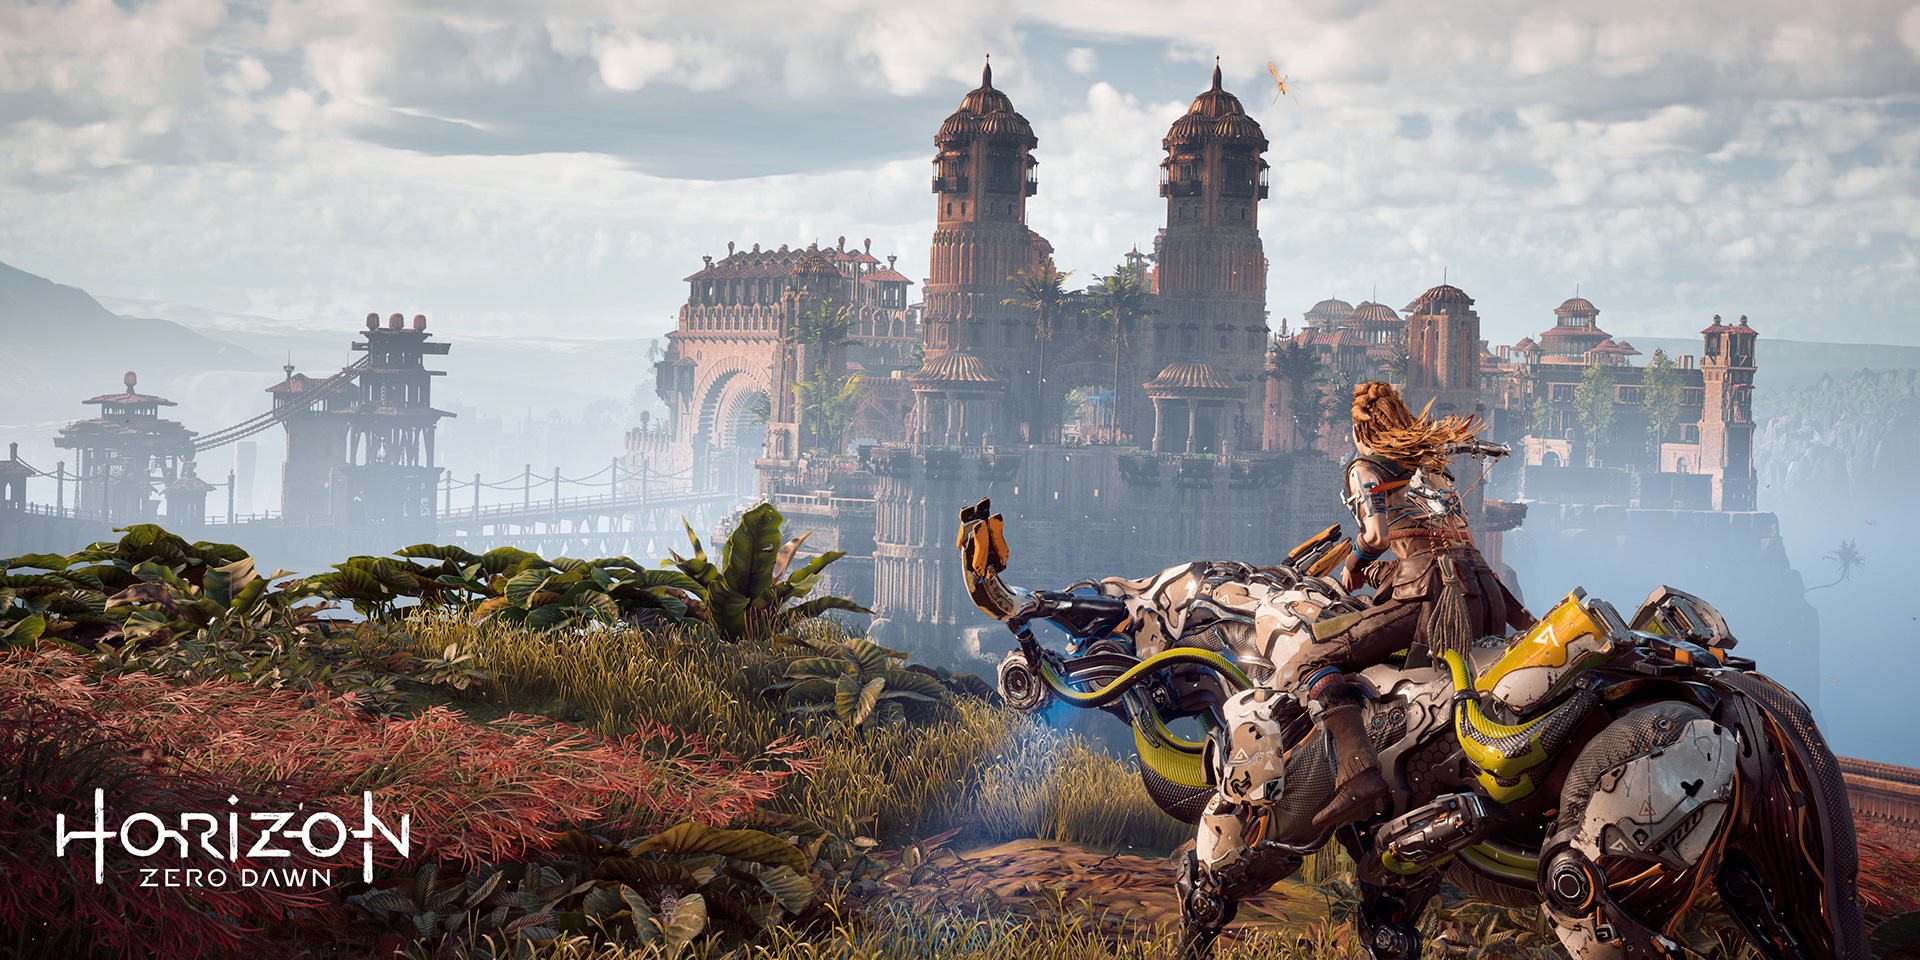 Today's Best Game Deals: Horizon Zero Dawn Complete $4, Mortal Kombat 11 $20, more - 9to5Toys